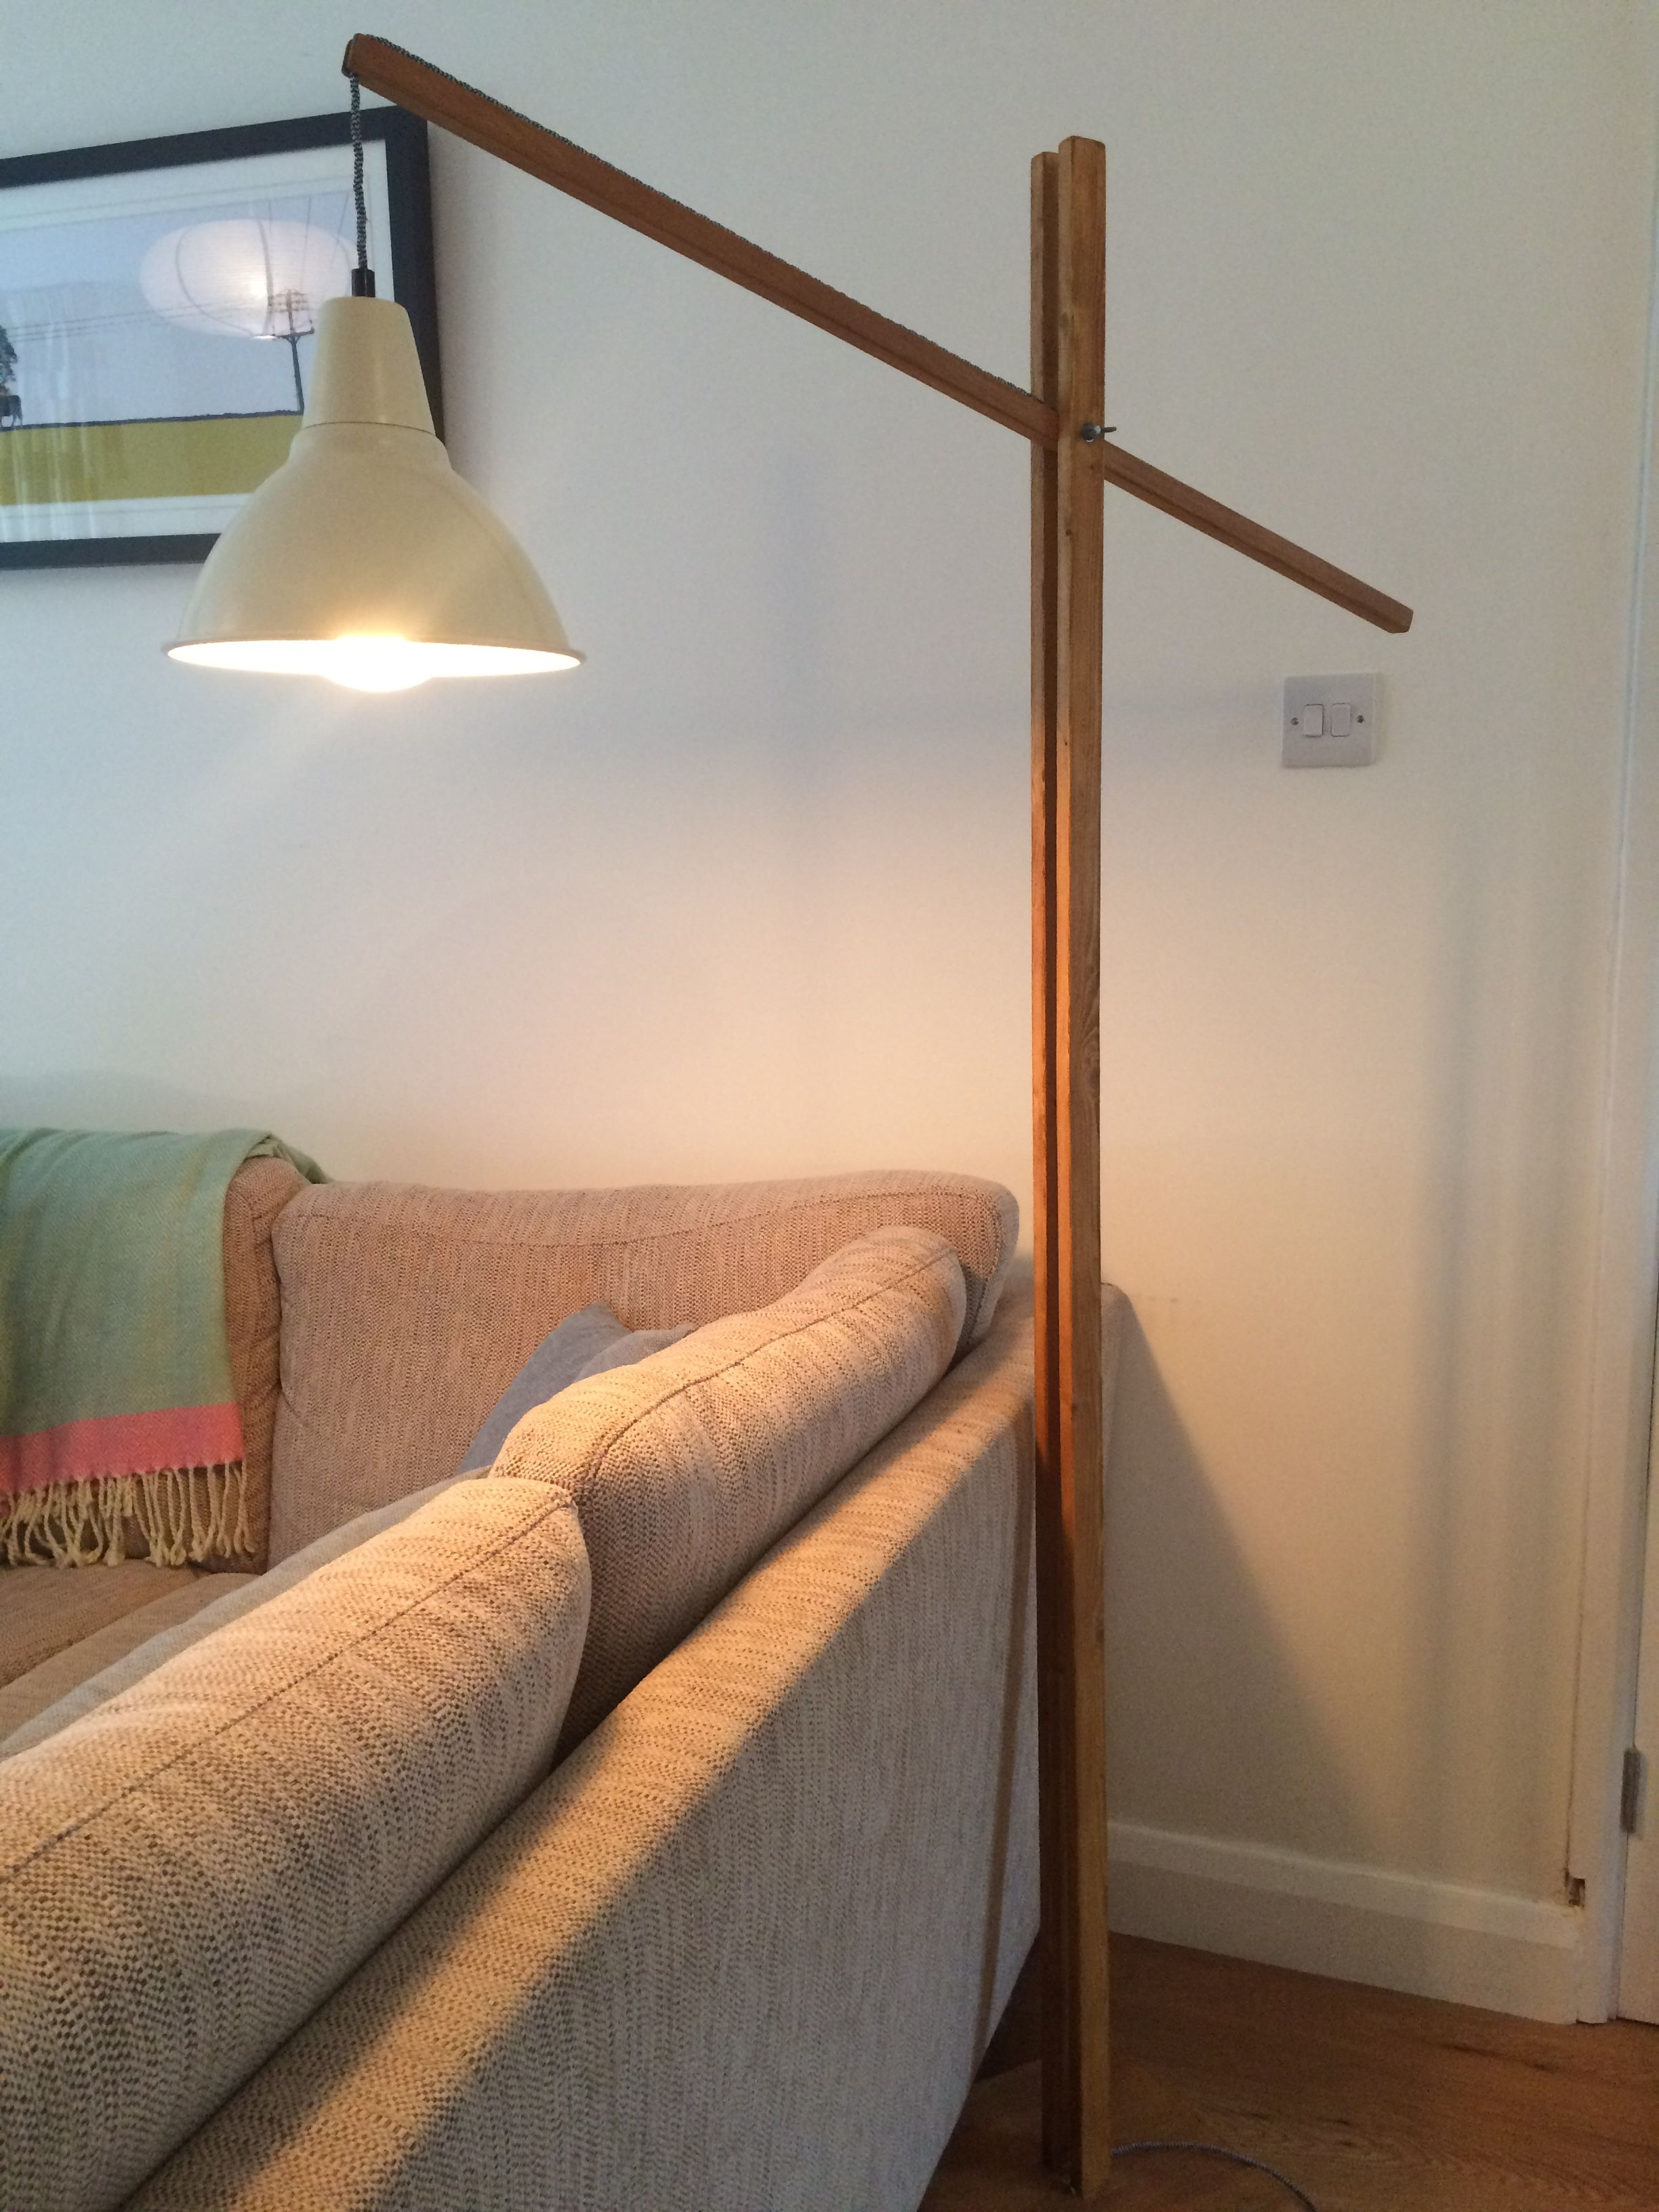 Home Made Floor Lamp With Exposed Braided Cable And